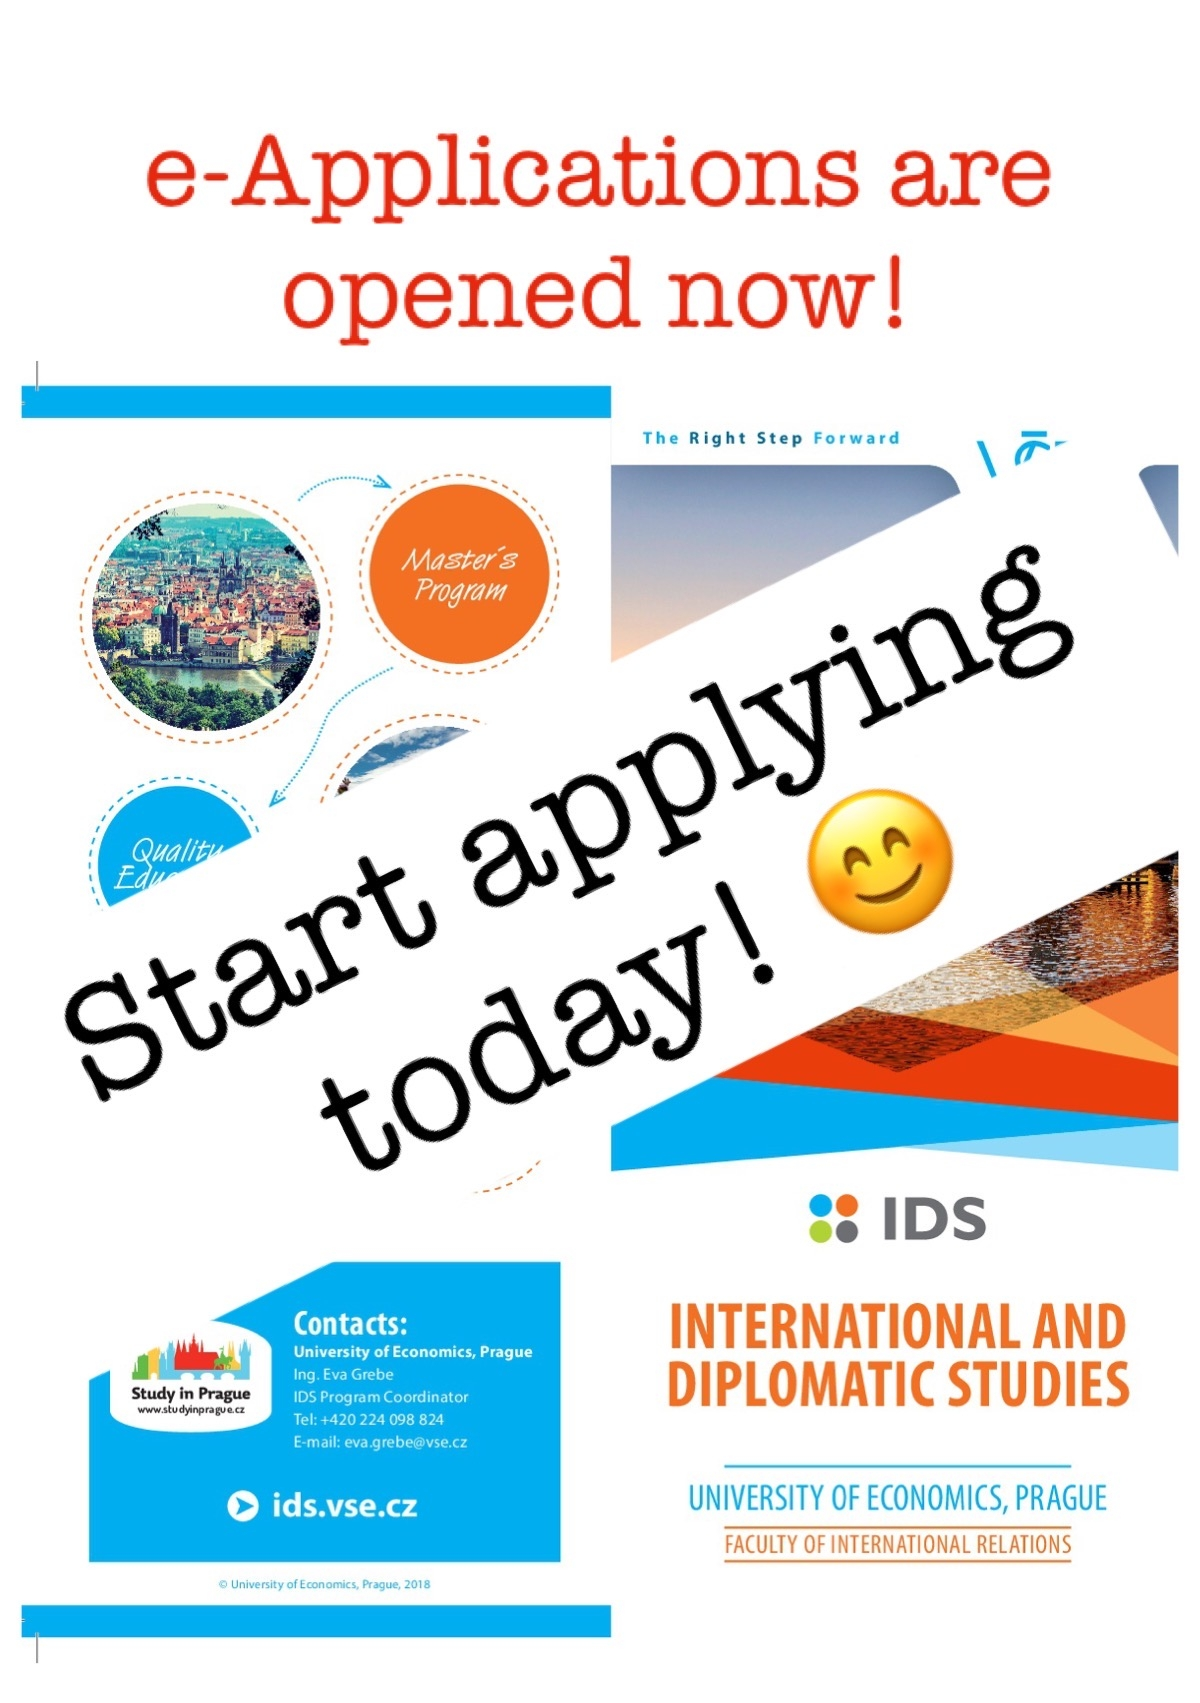 E-Applications are opened!